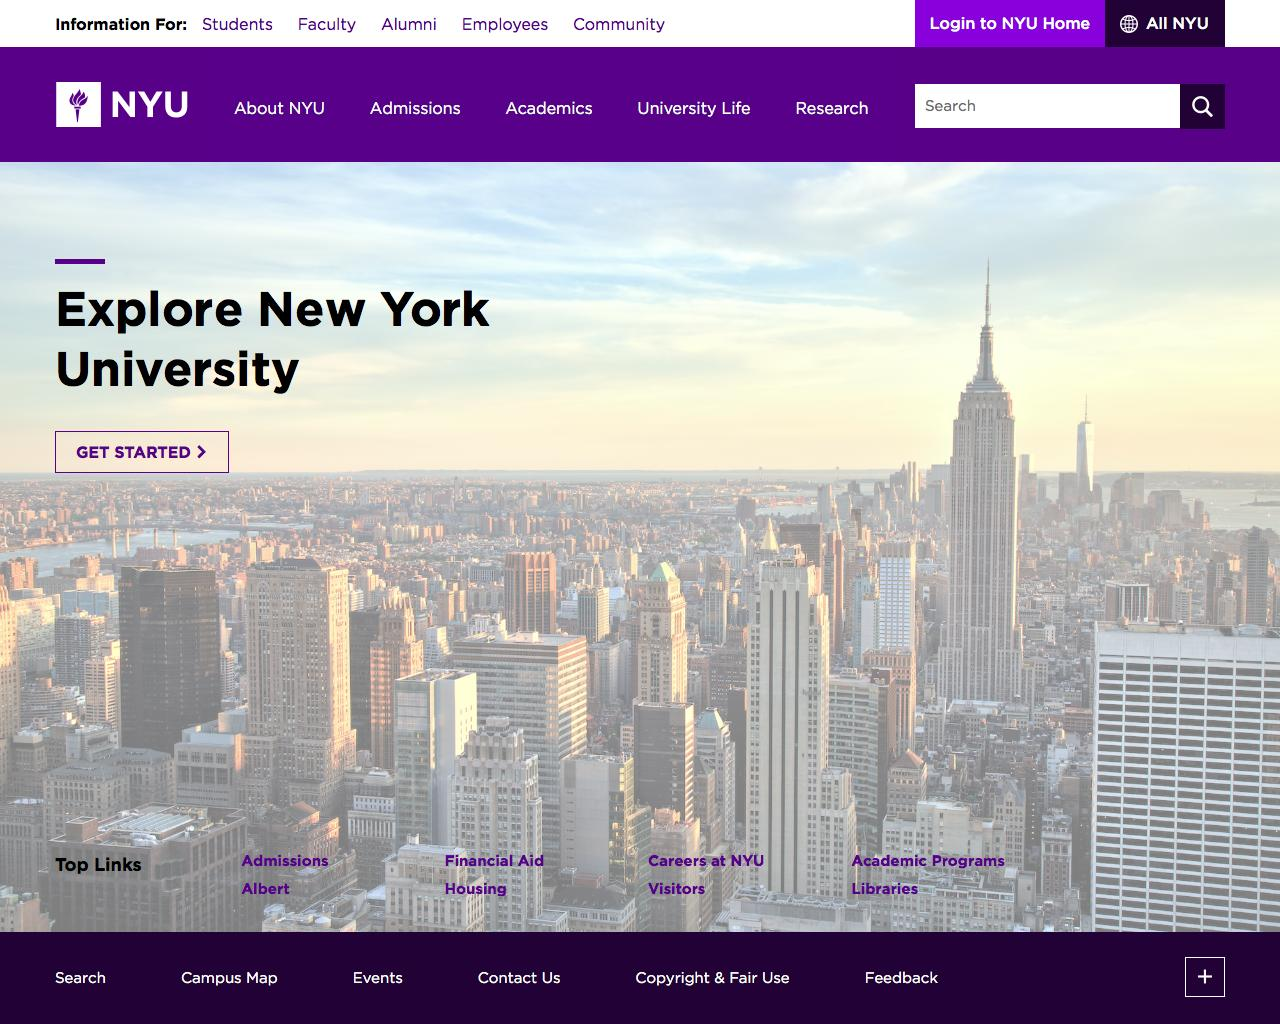 Screenshot of nyu.edu - NYU - captured Jan. 27, 2017